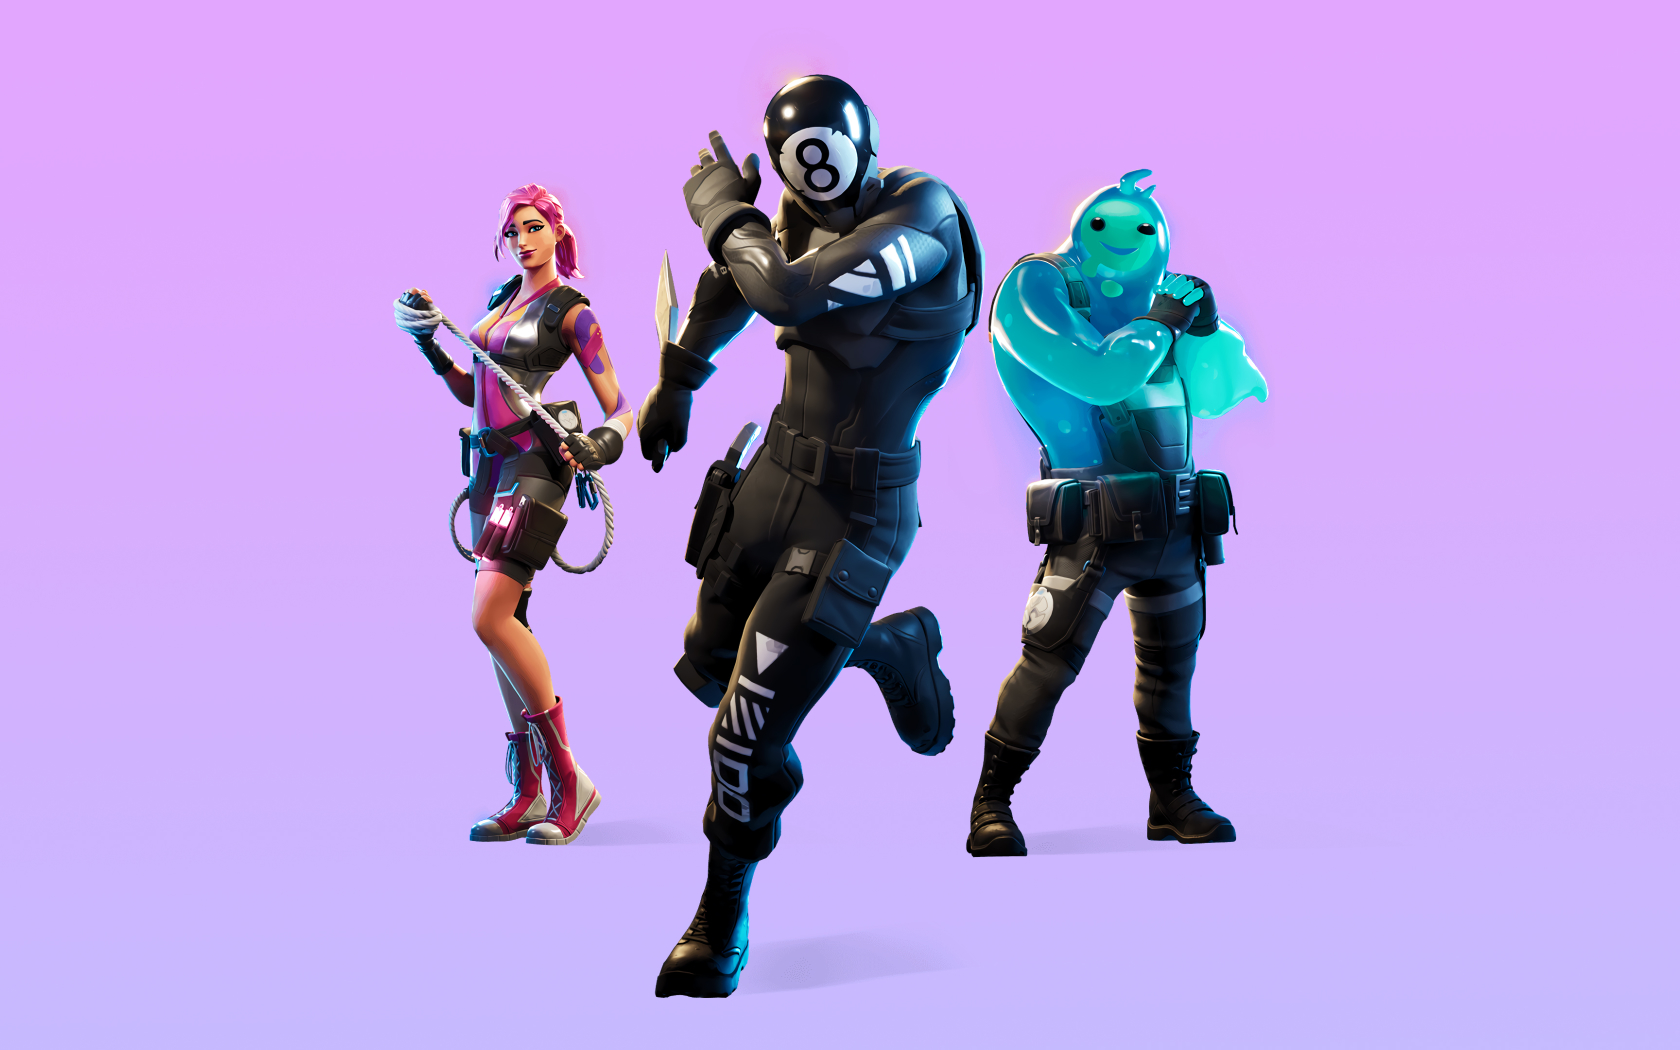 1680x1050 Fortnite Chapter 2 Season 1 Battle Pass Skins 1680x1050 Resolution Wallpaper Hd Games 4k Wallpapers Images Photos And Background